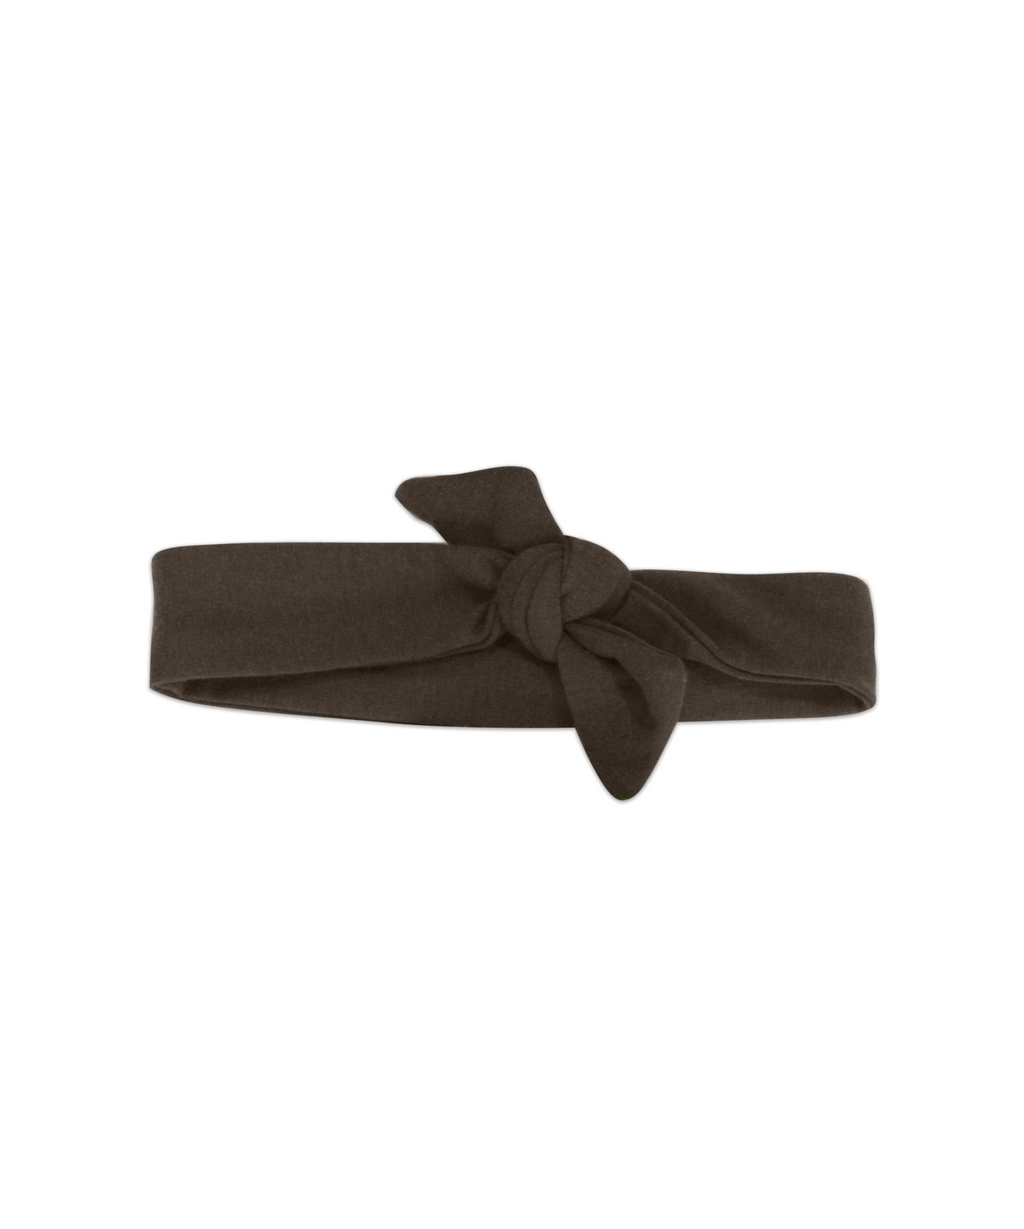 Top Knot Nutella Brown Adjustable Headband